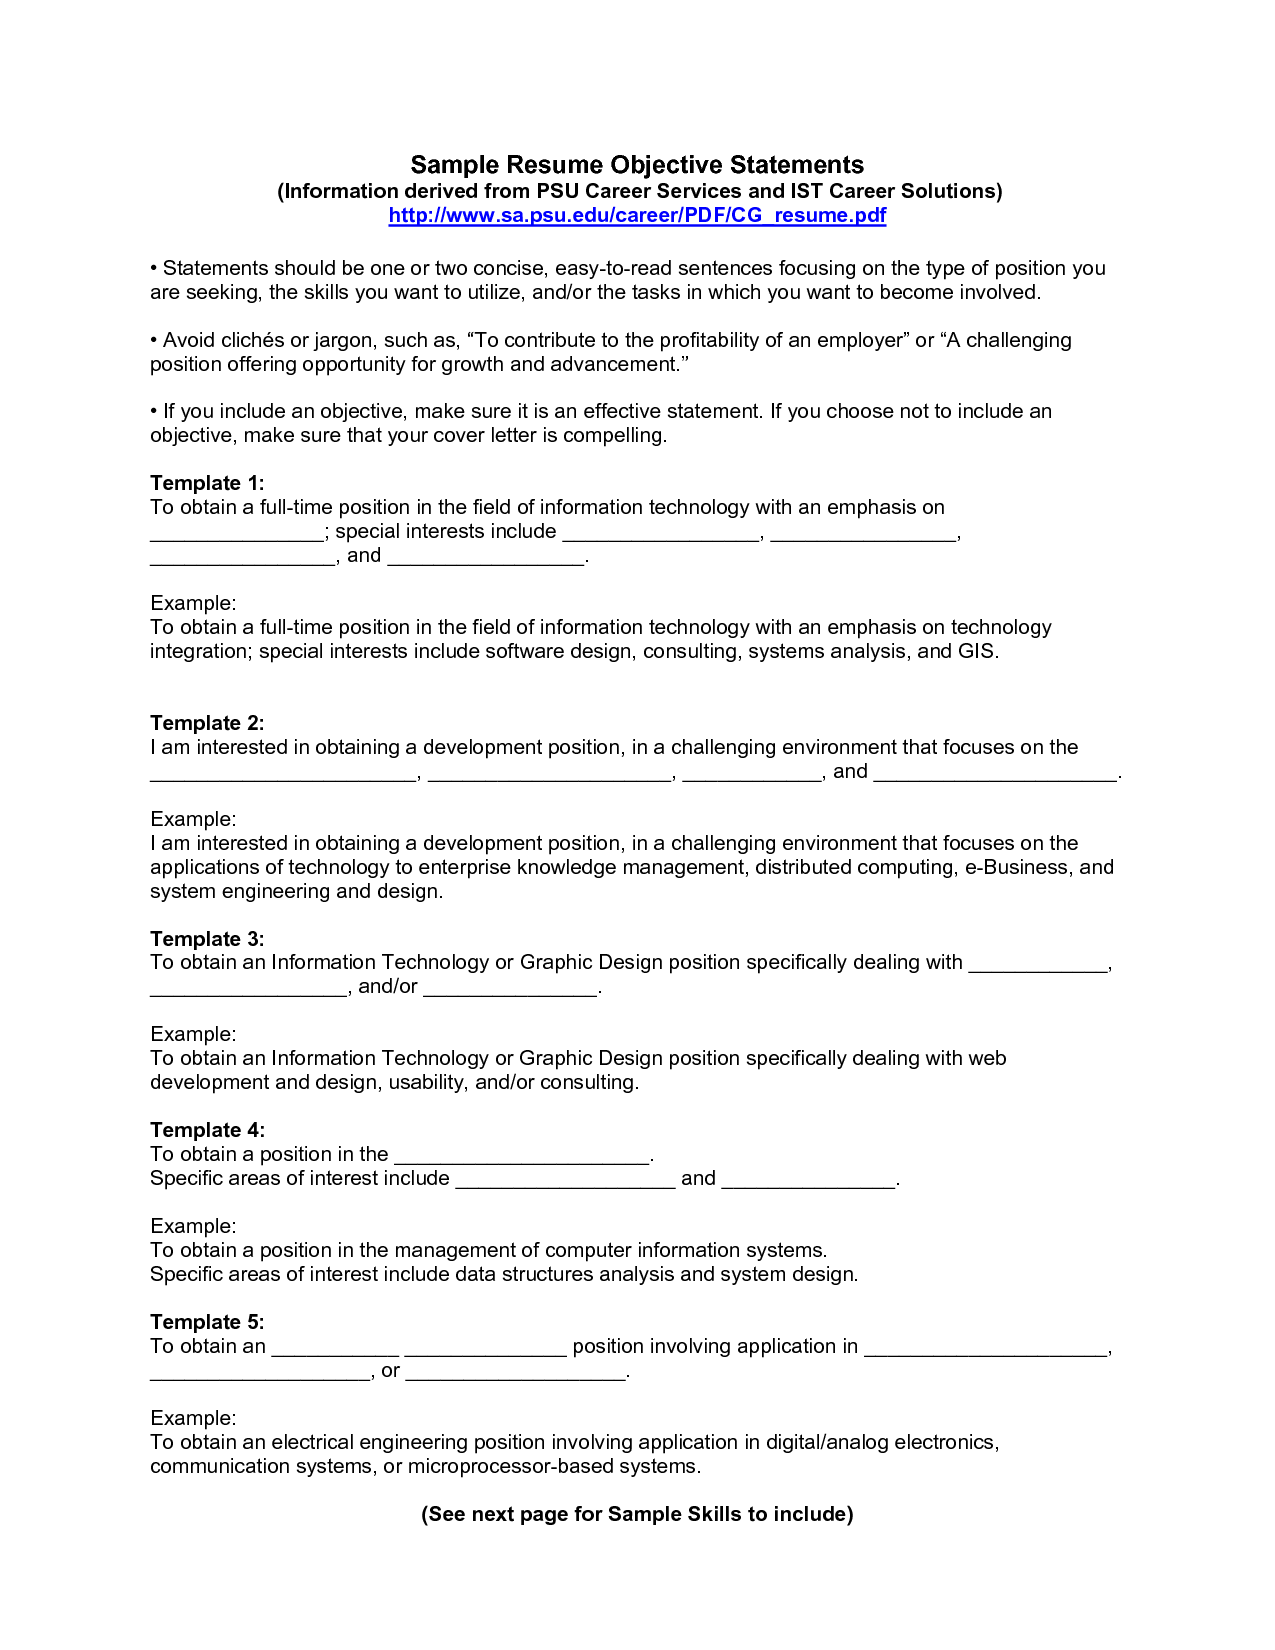 Call Center Floor Manager Sample Resume Adorable Resume Objective Statement For Teacher  Httpwww.resumecareer .